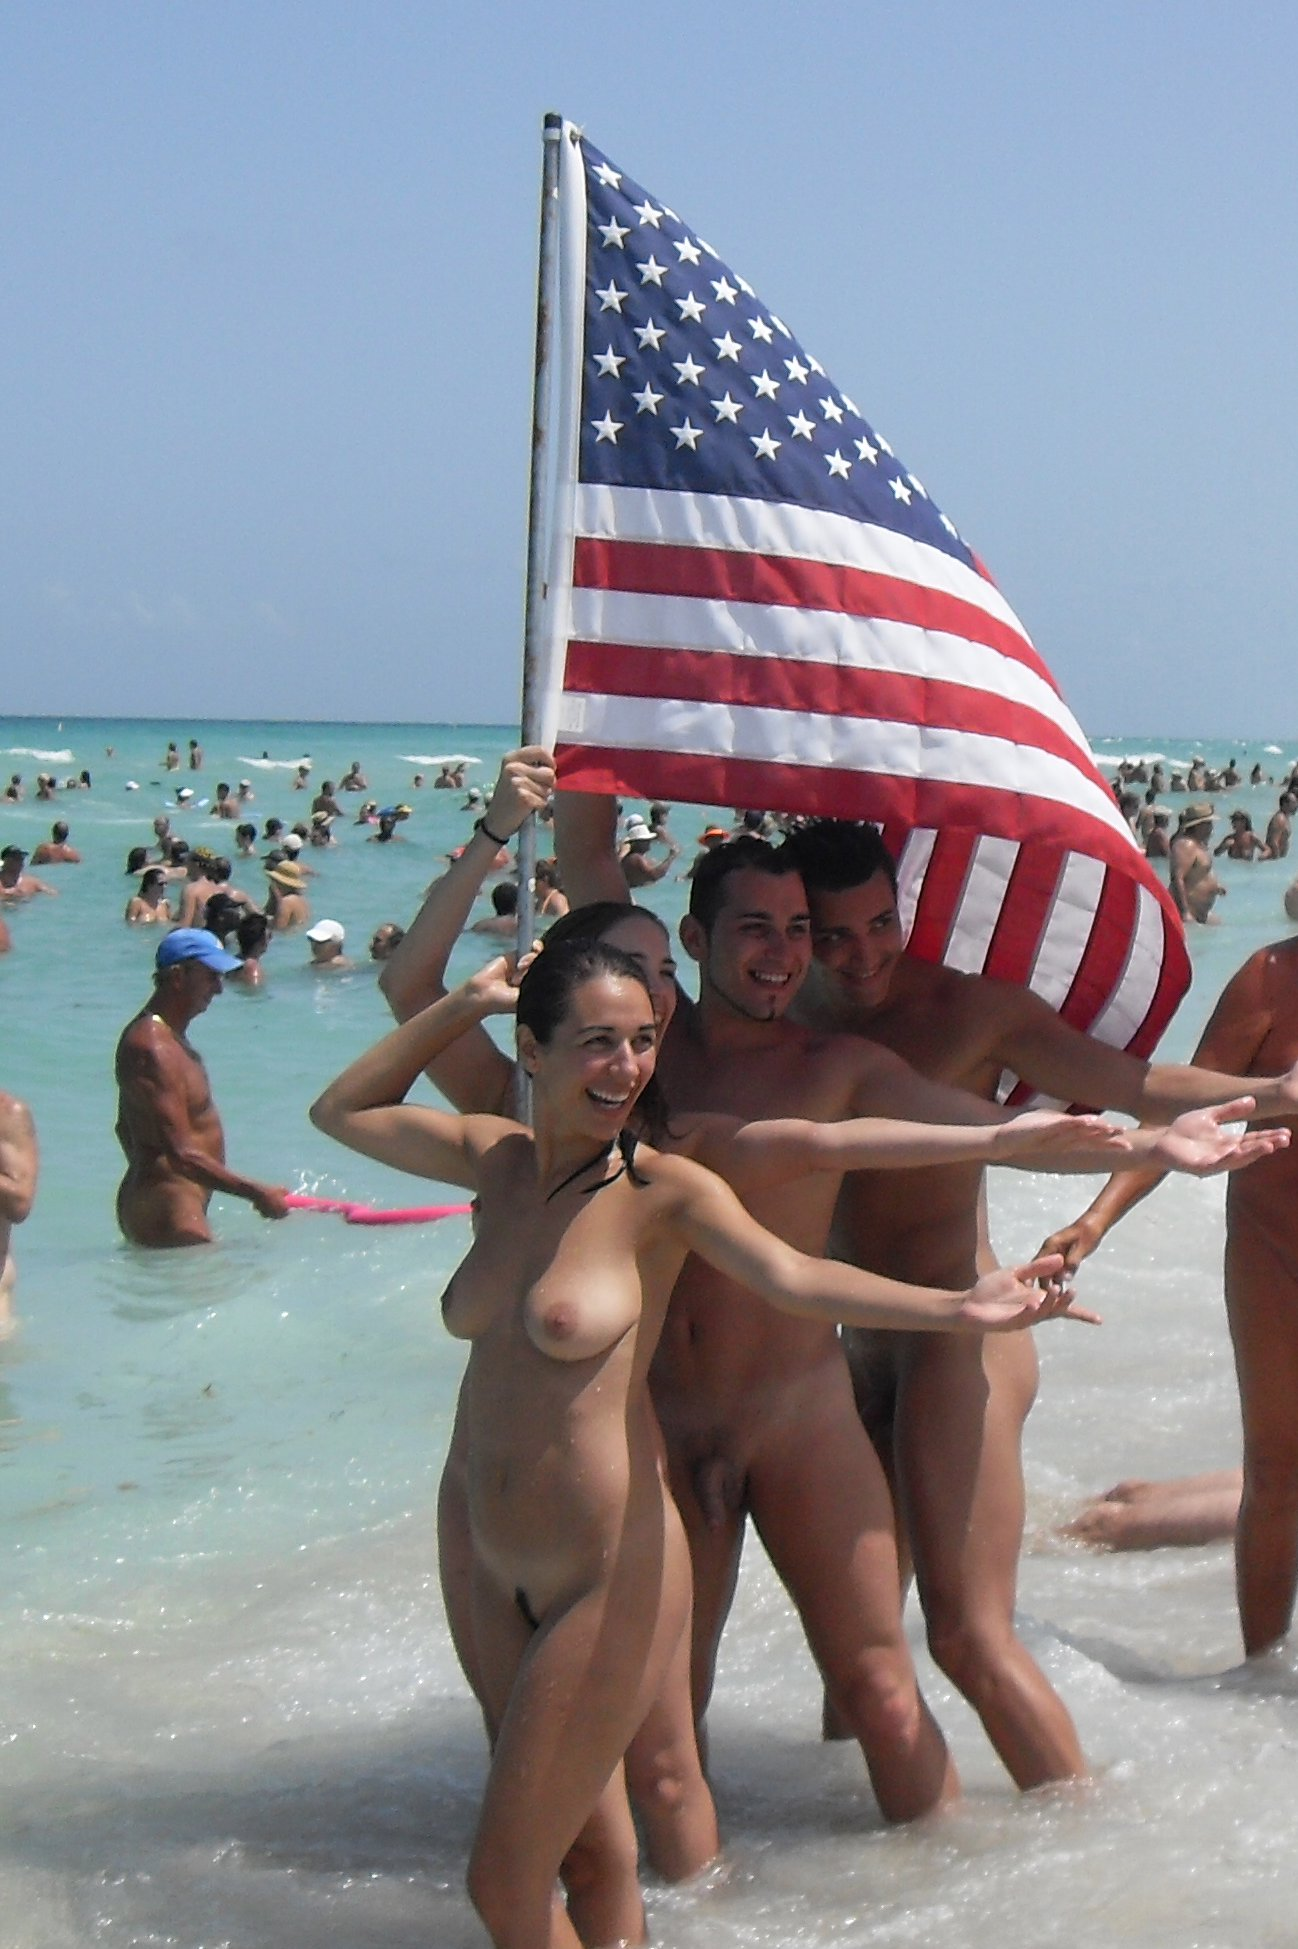 http://upload.wikimedia.org/wikipedia/commons/c/c5/Haulover-skinny-dipping.JPG